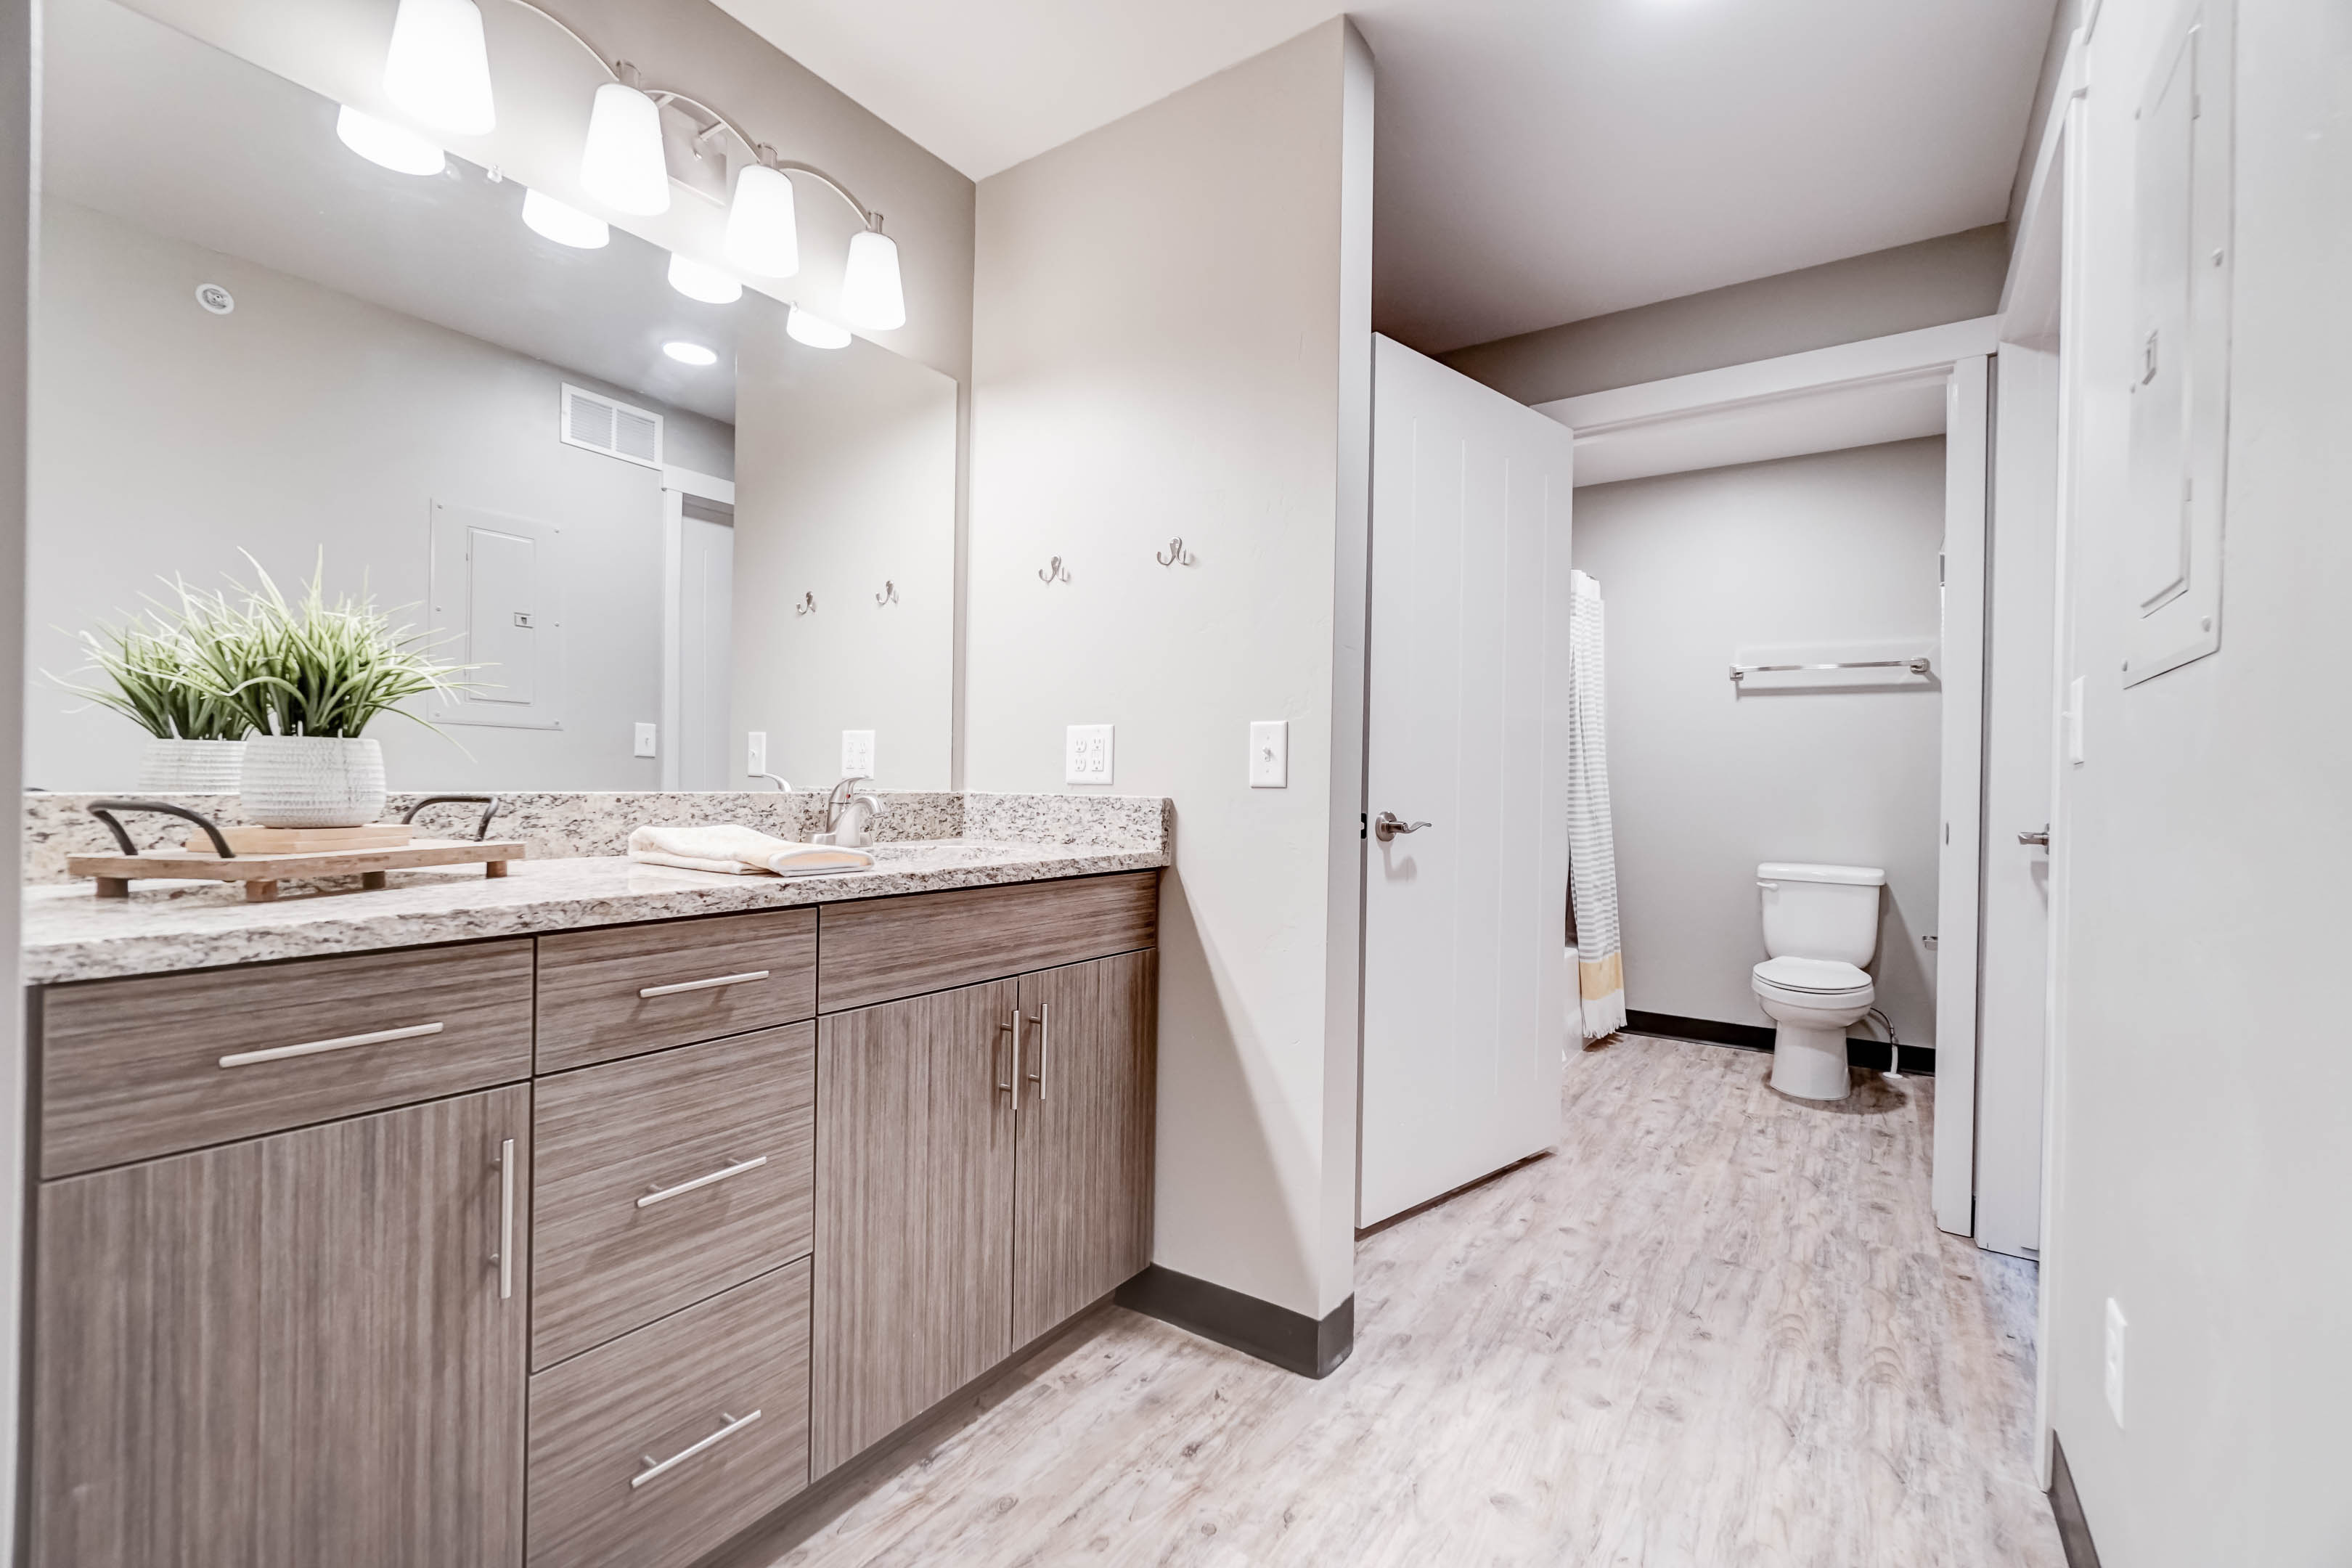 Vanities and bathrooms are separate so someone can be showering while others are getting ready.  Between the two vanities there are more drawers than tenants!